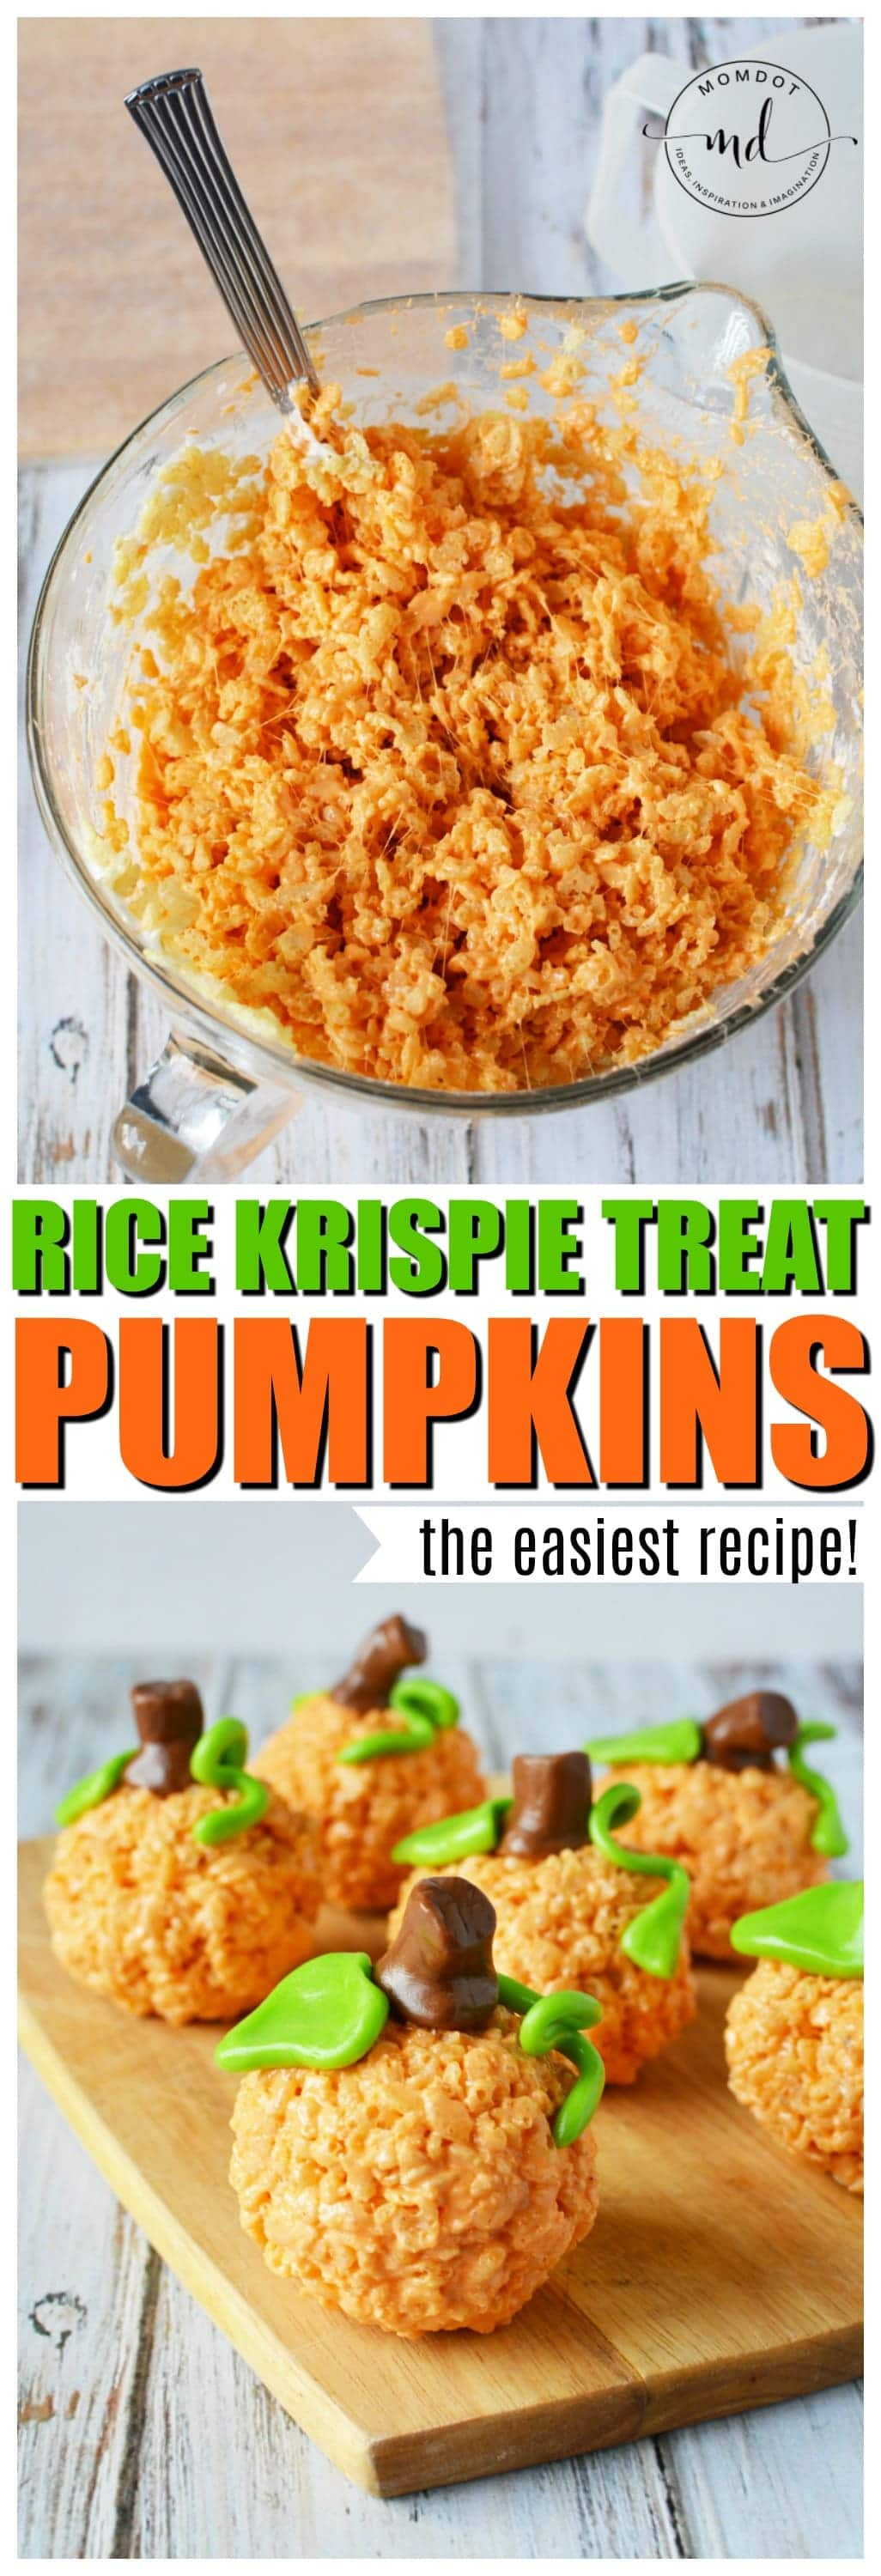 Pumpkin Rice Krispie Treats Recipe, How to make Pumpkin rice krispie treats with tootsie roll stump and leaves #recipe #ricekrispies #tutorial #thanksgiving #halloween #howto #DIY